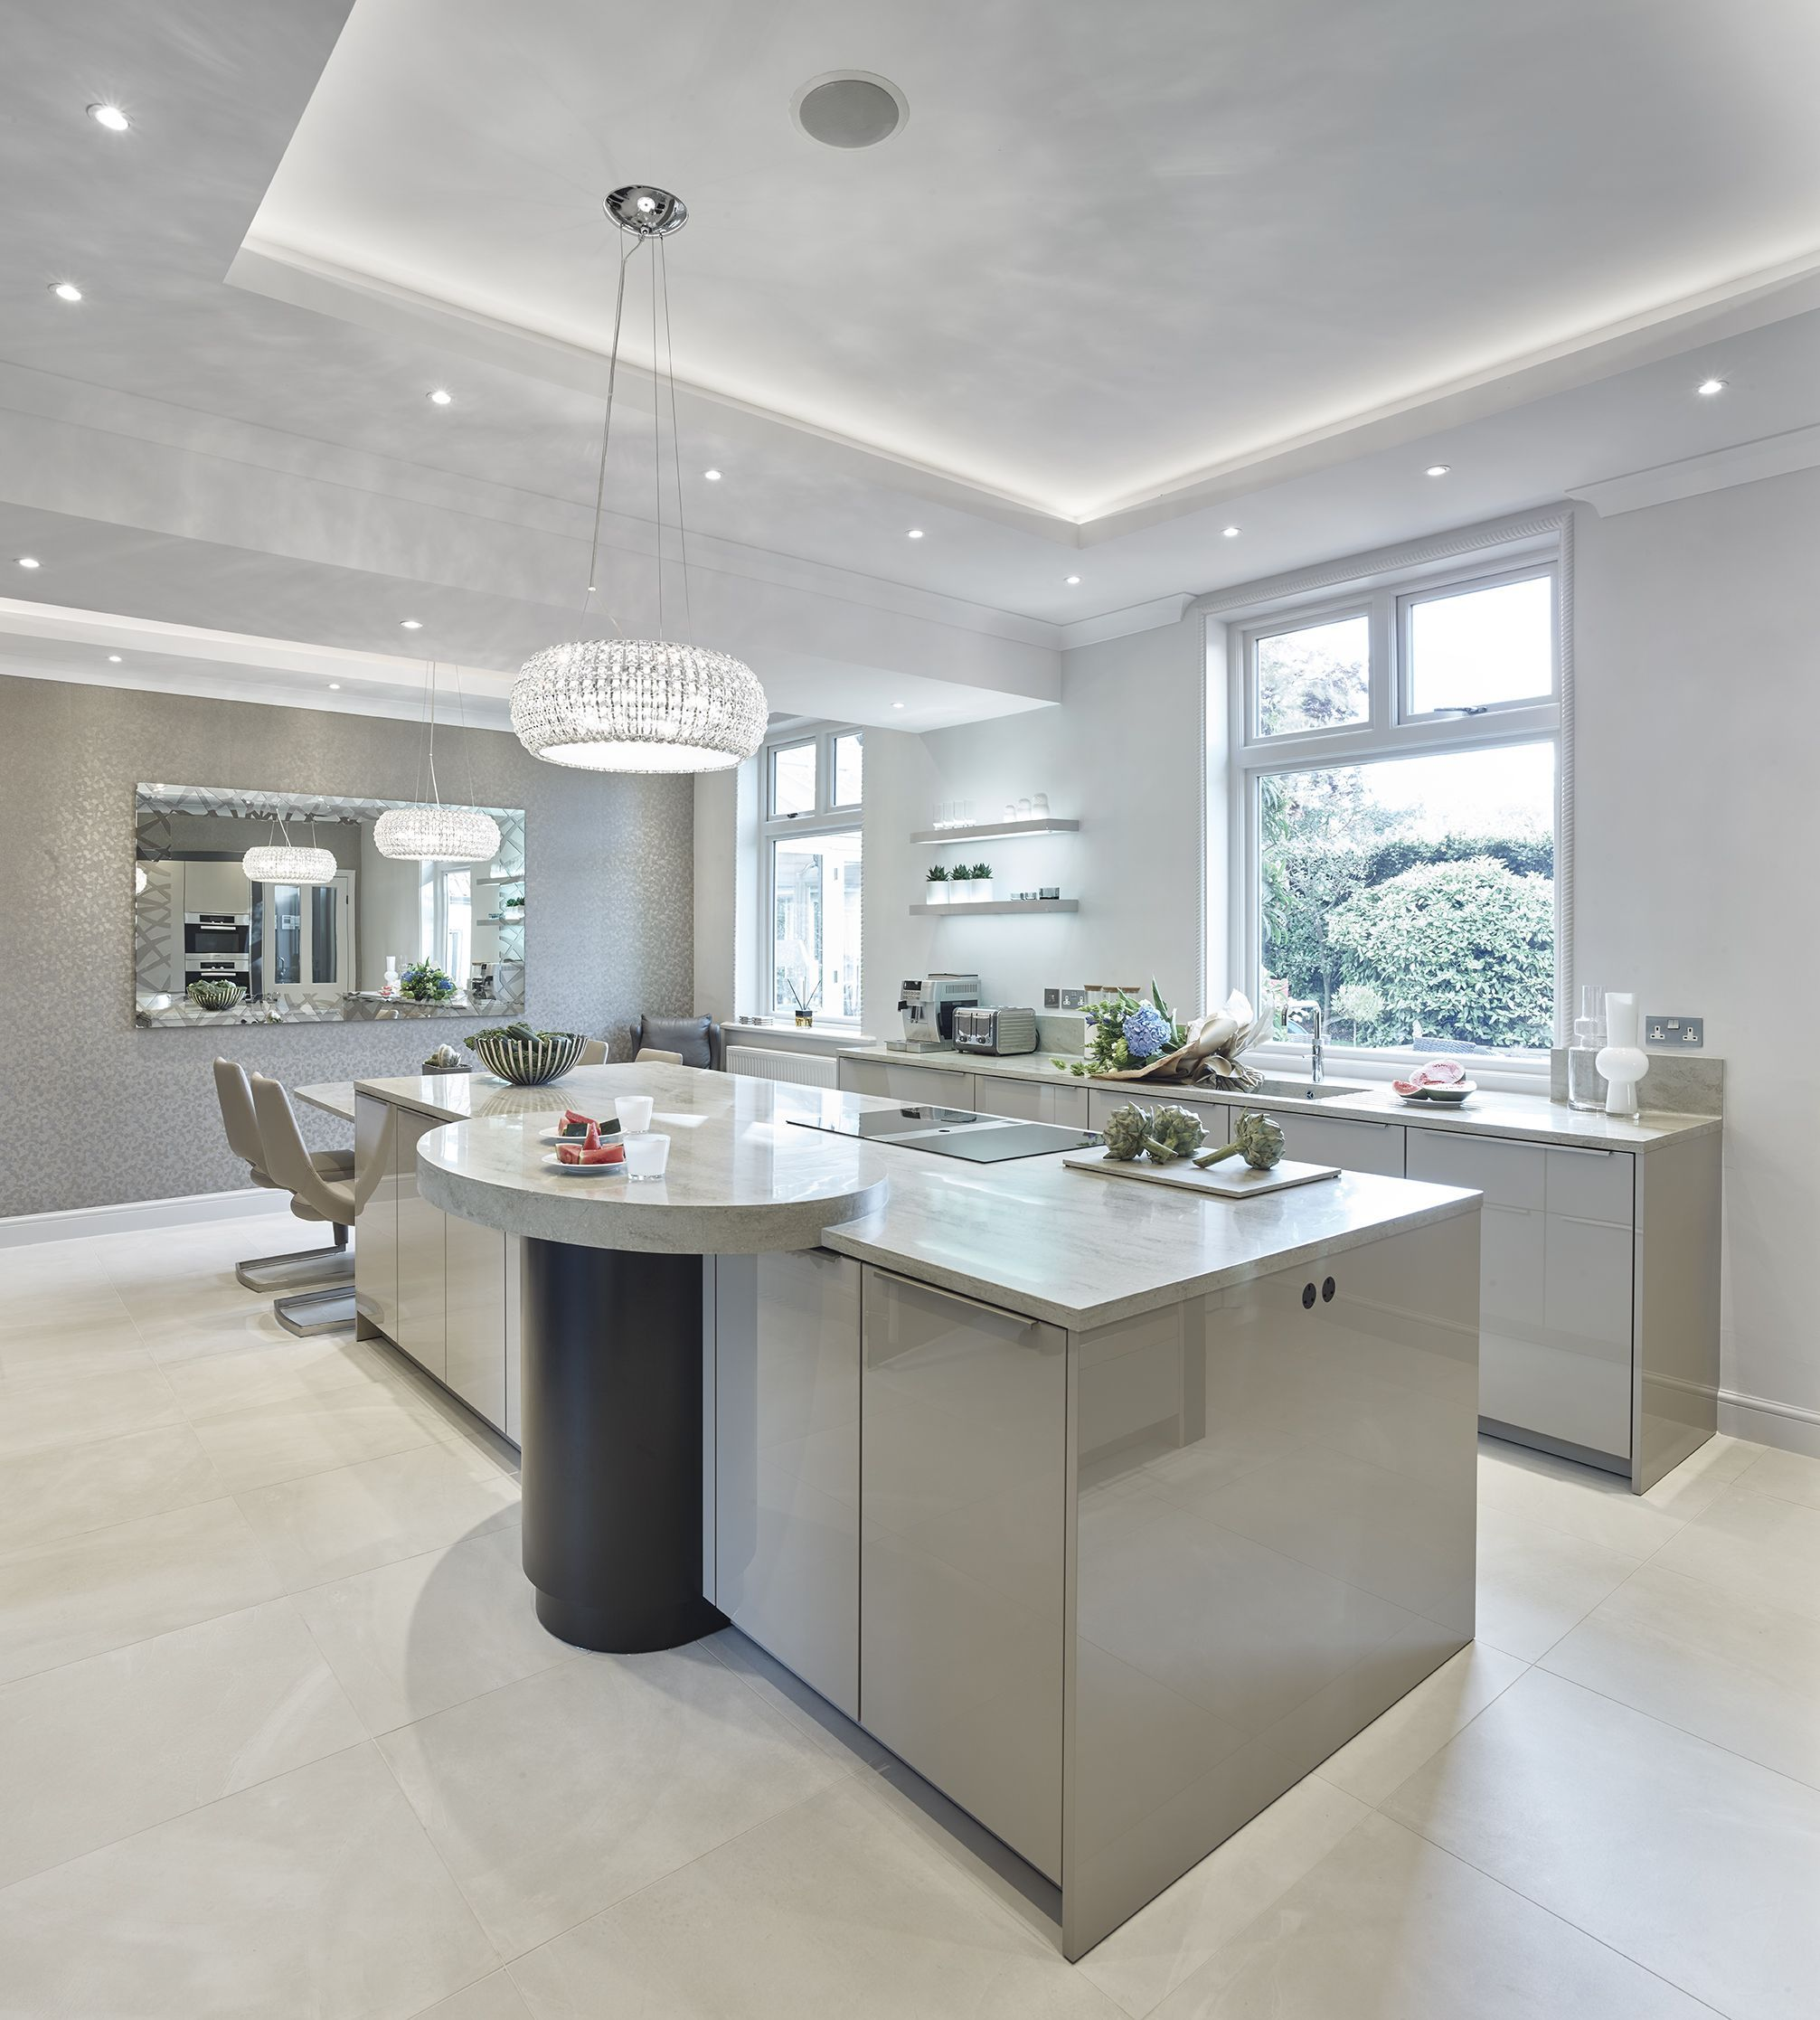 Kitchen Furniture Leeds: SieMatic Classic SC40 Kitchen In Agate Grey Gloss Finish